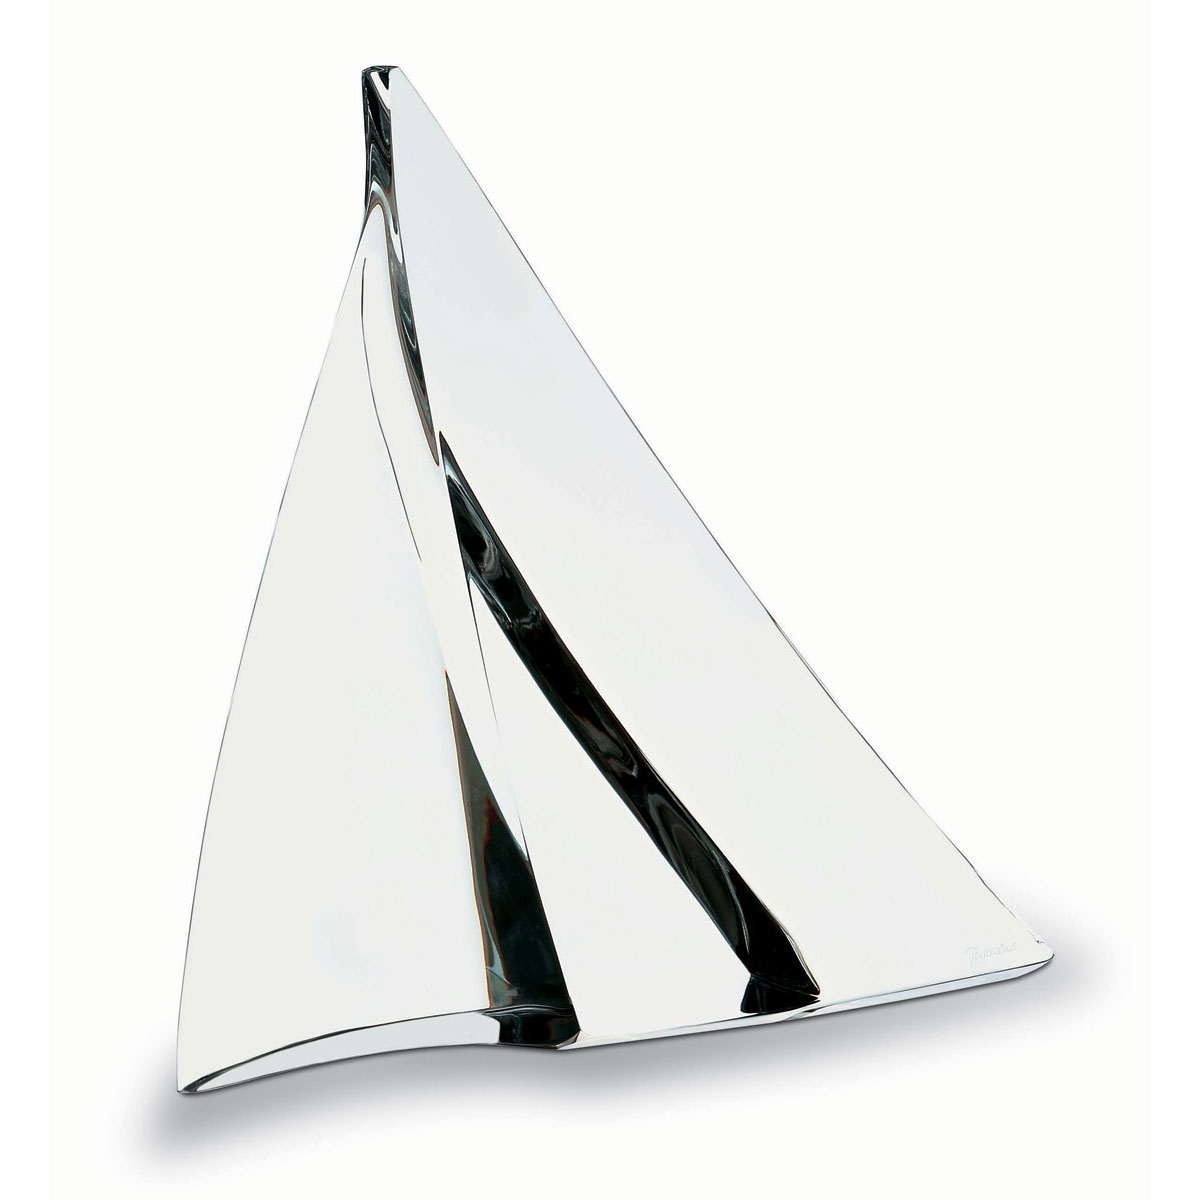 Baccarat Crystal, Alizee Sailboat Sculpture, Clear